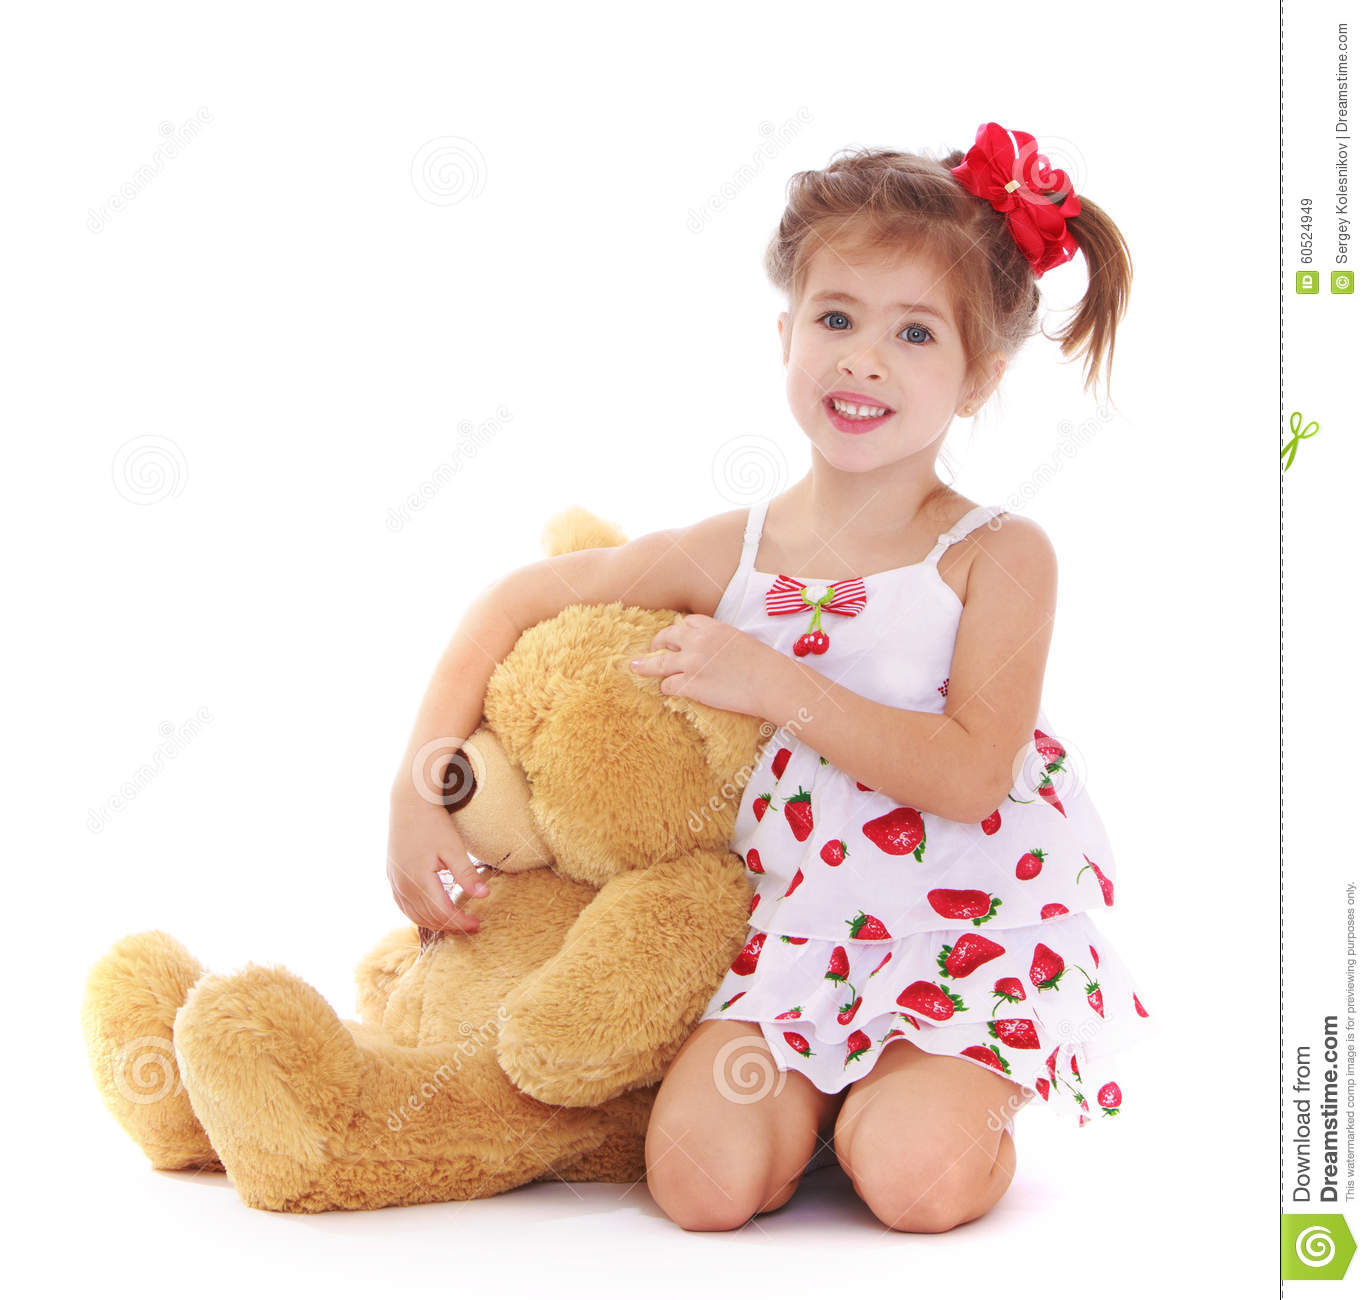 Cute Little Girl With A Teddy Bear Stock Image - Image ...Little Girl With Teddy Bear Black And White